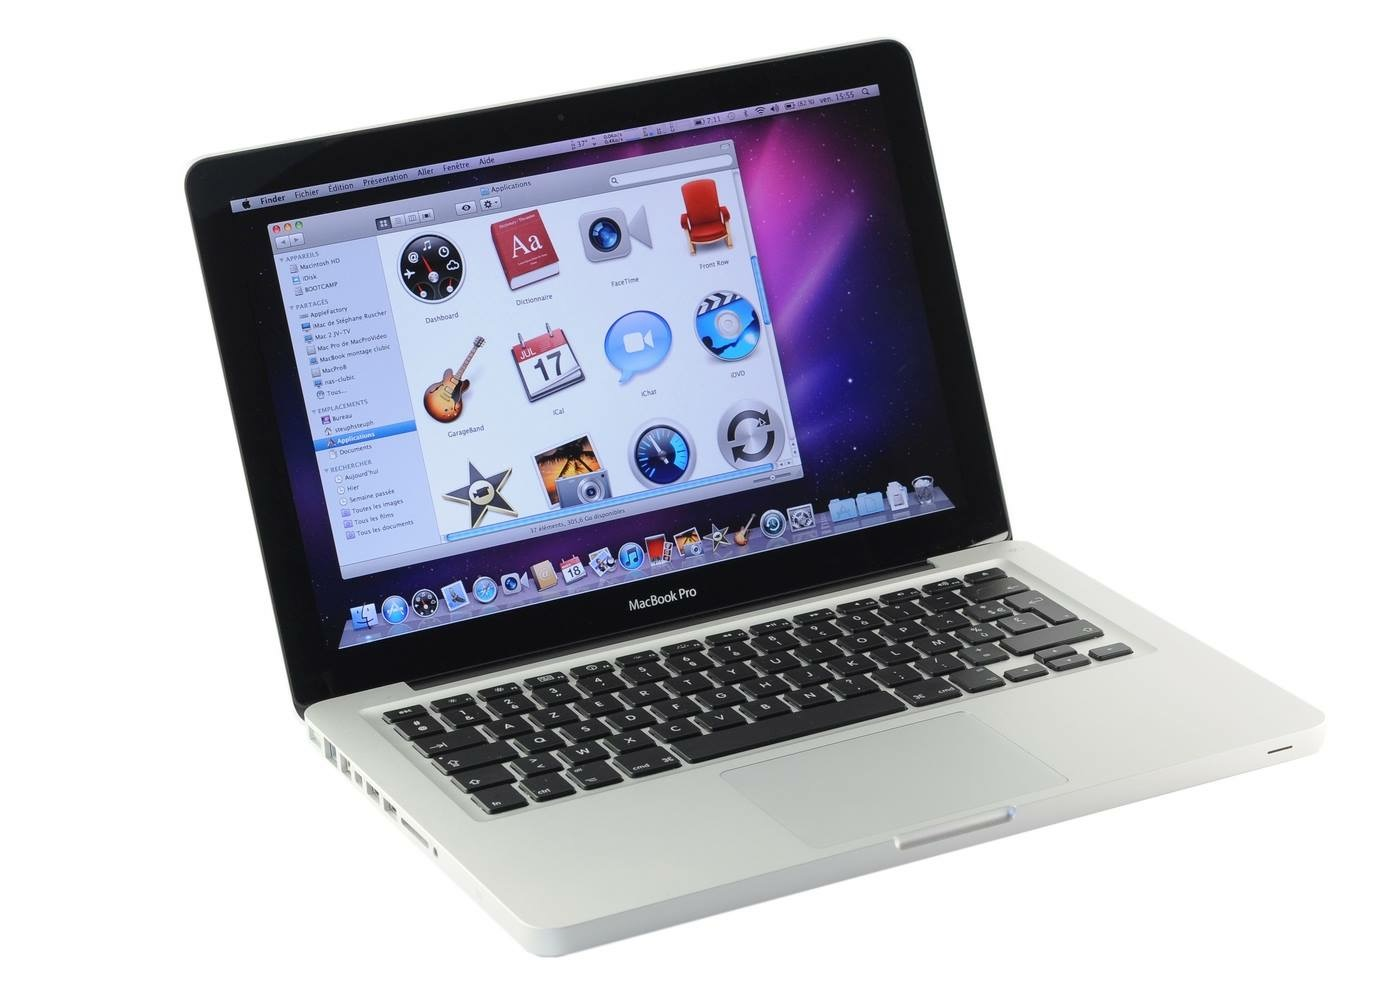 No recovery hd macbook air